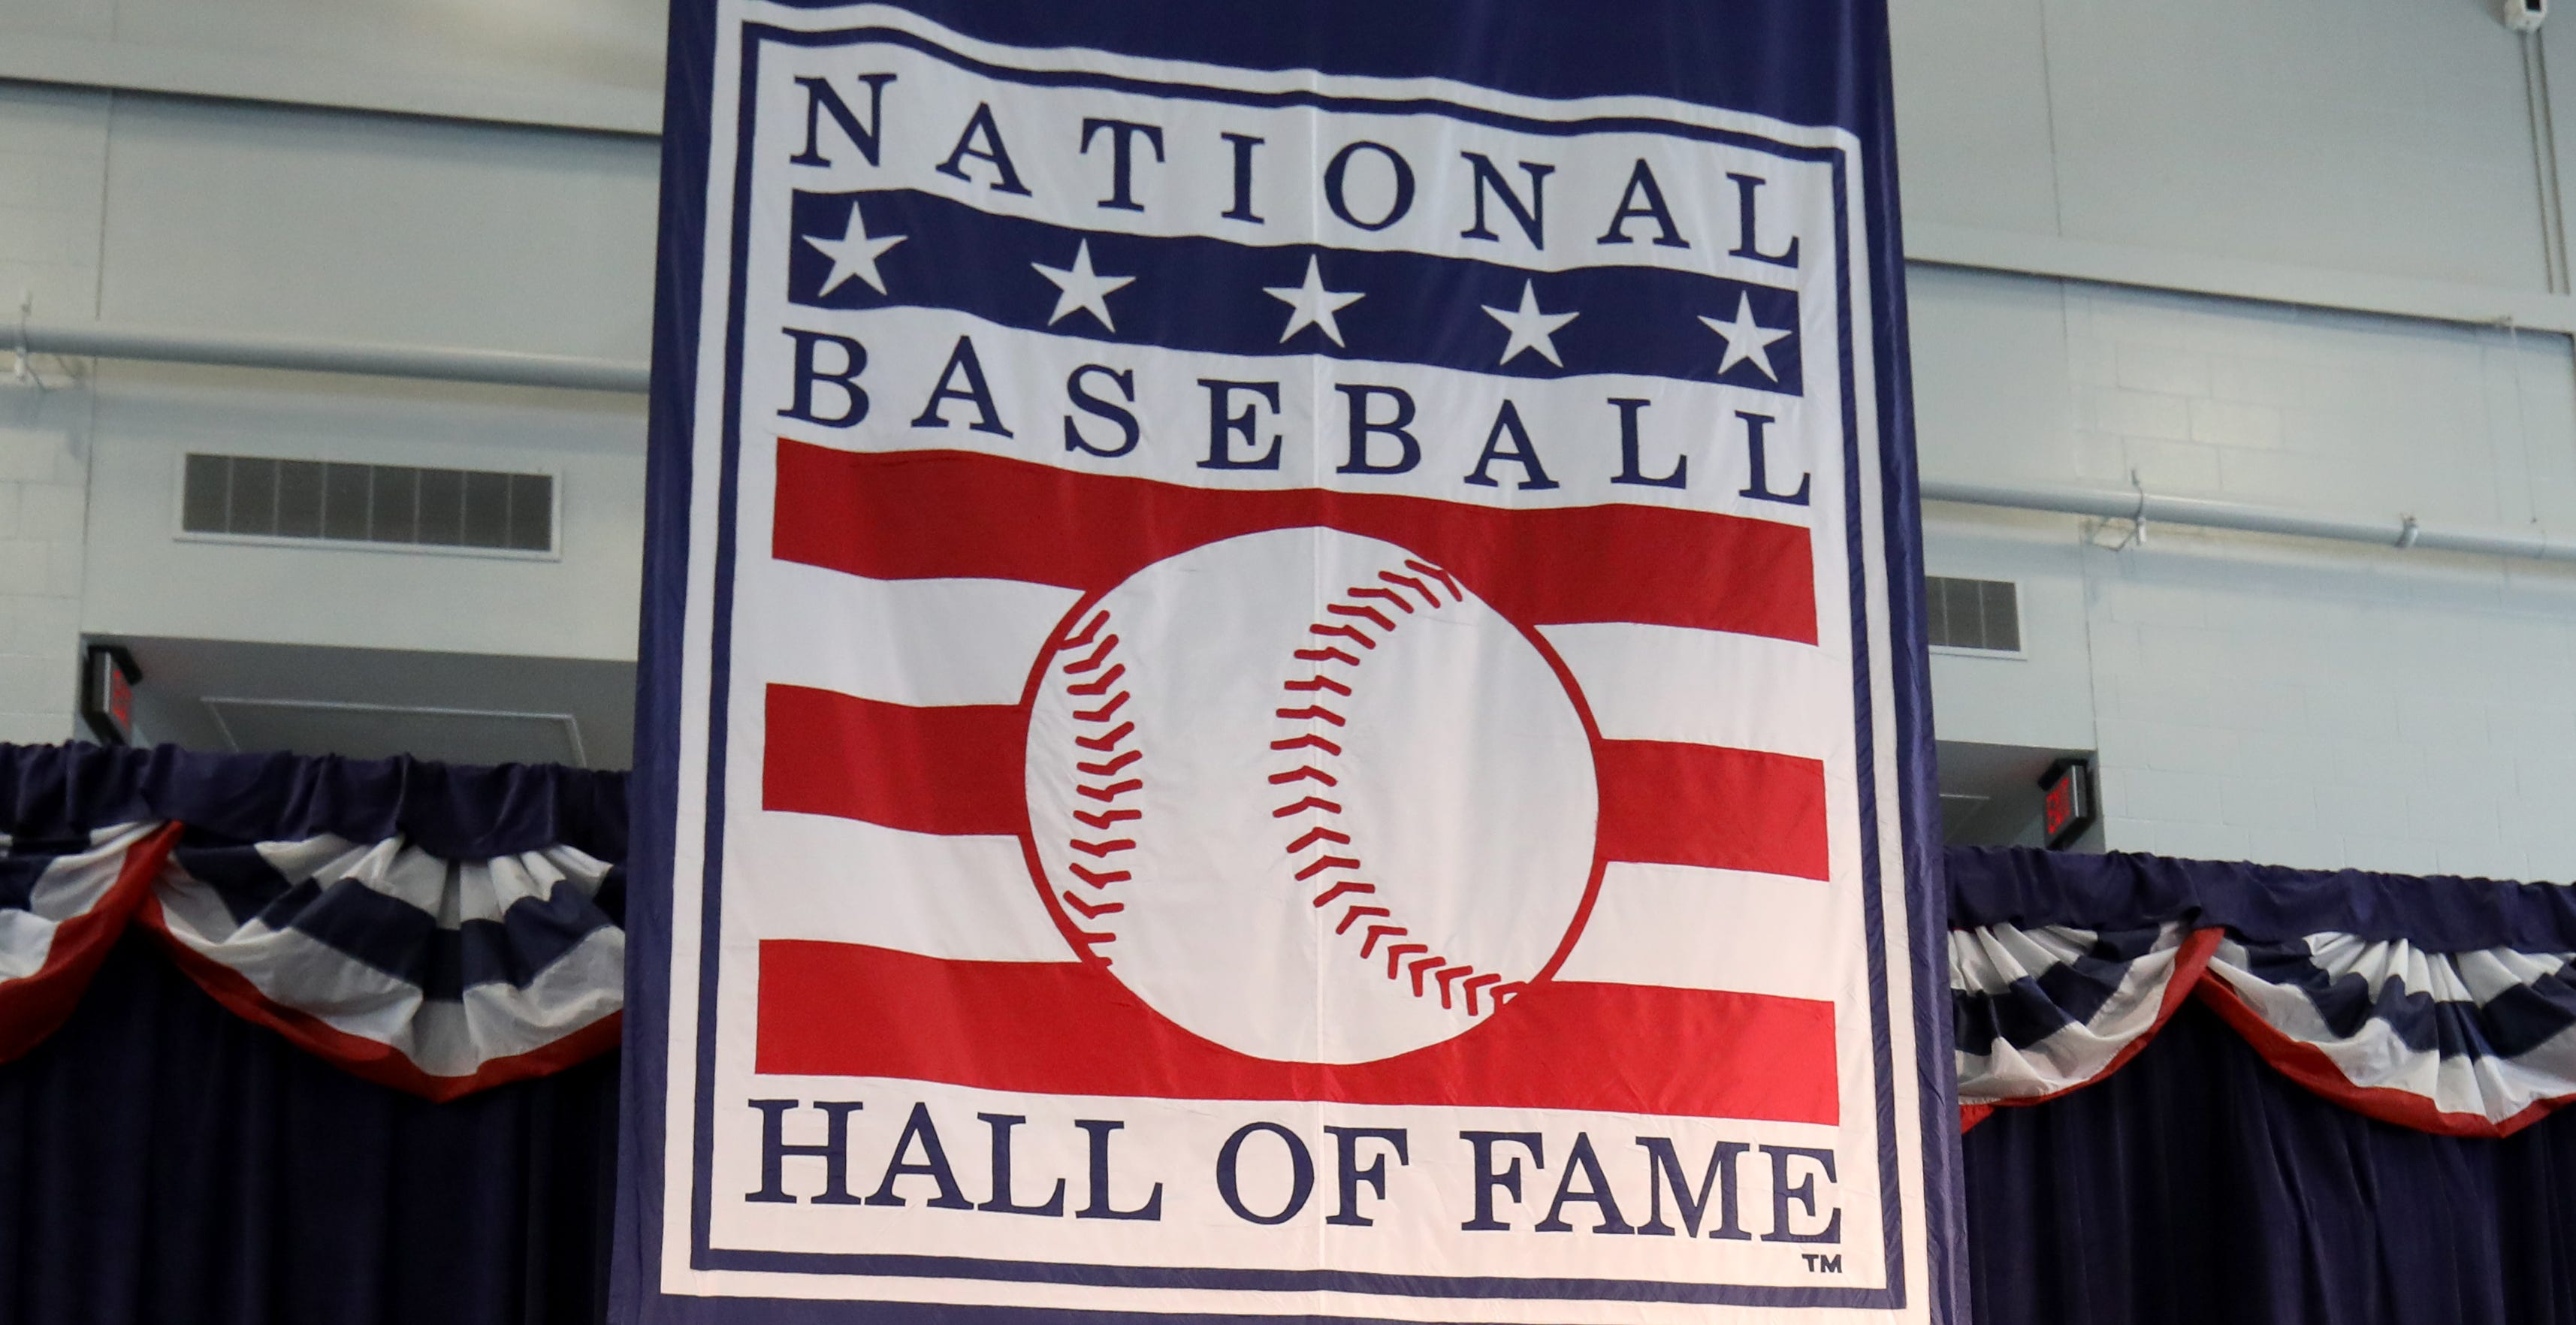 A view of the Baseball Hall of Fame logo in Cooperstown.